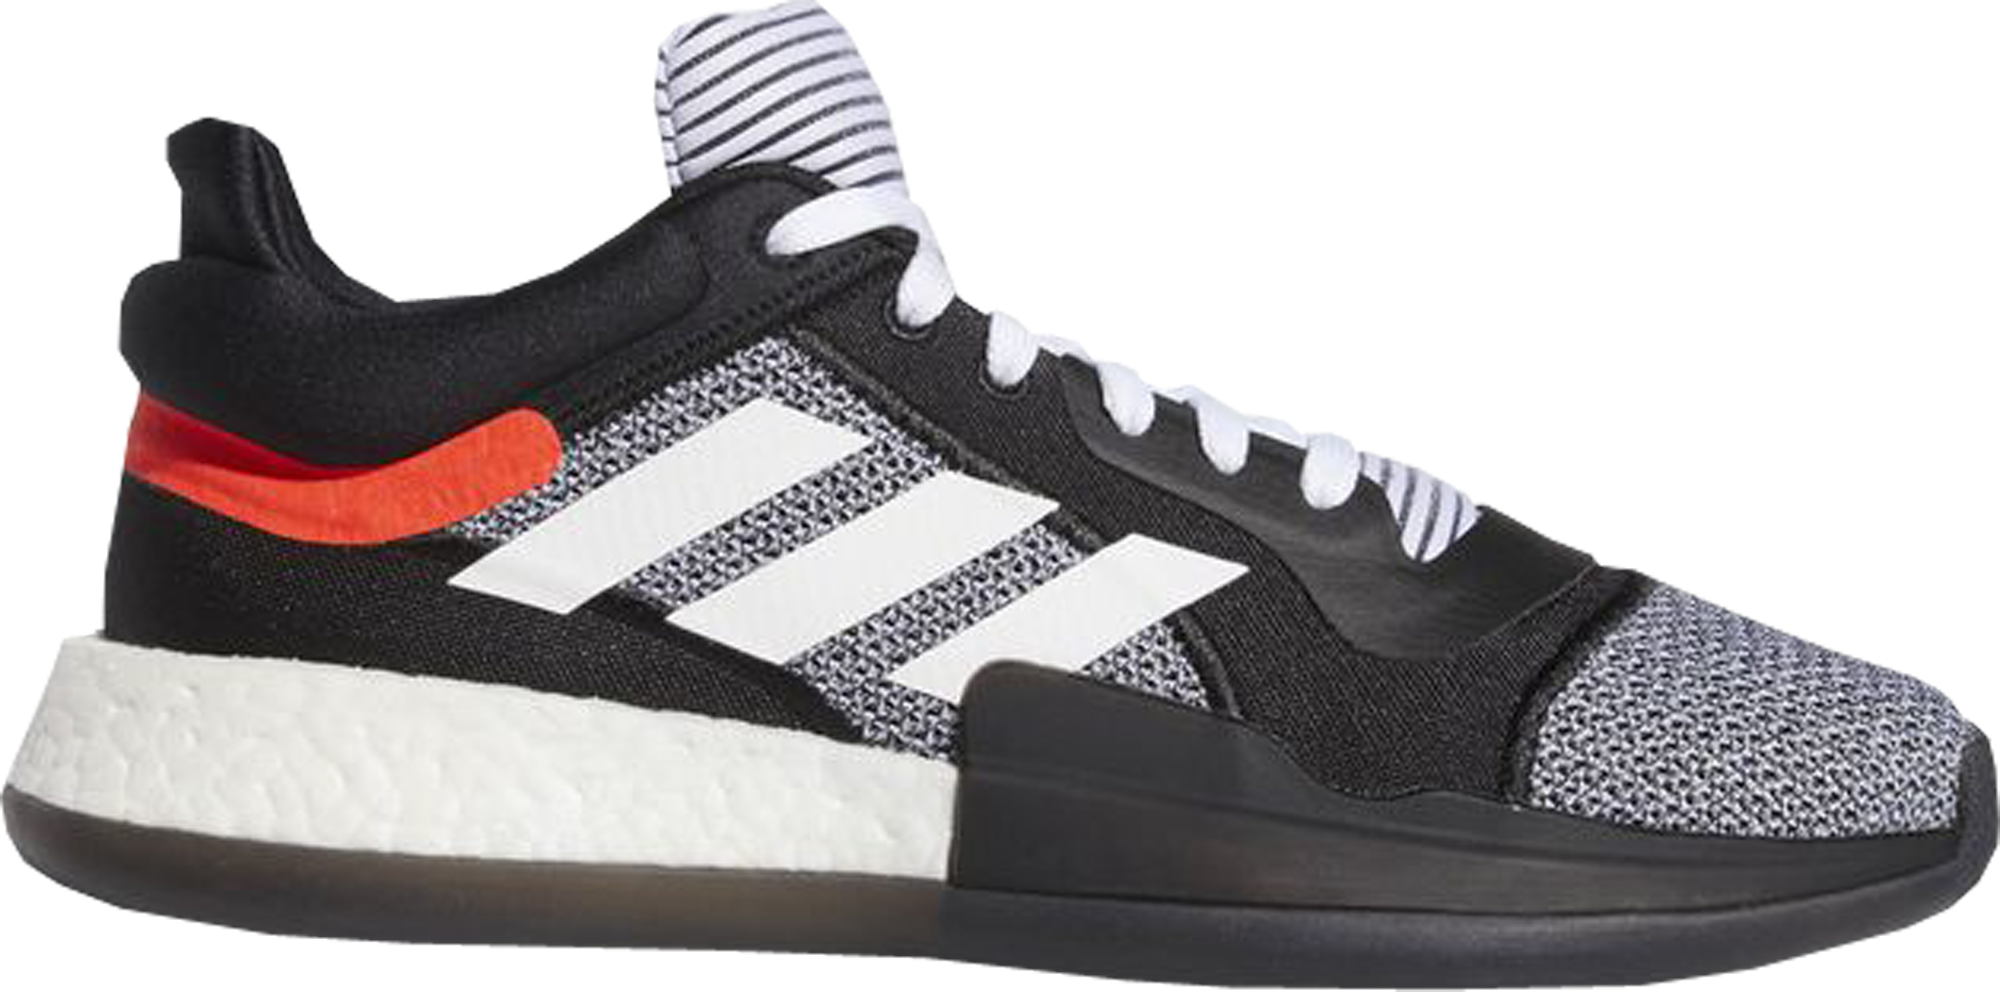 adidas Marquee Boost Low Core Black Cloud White